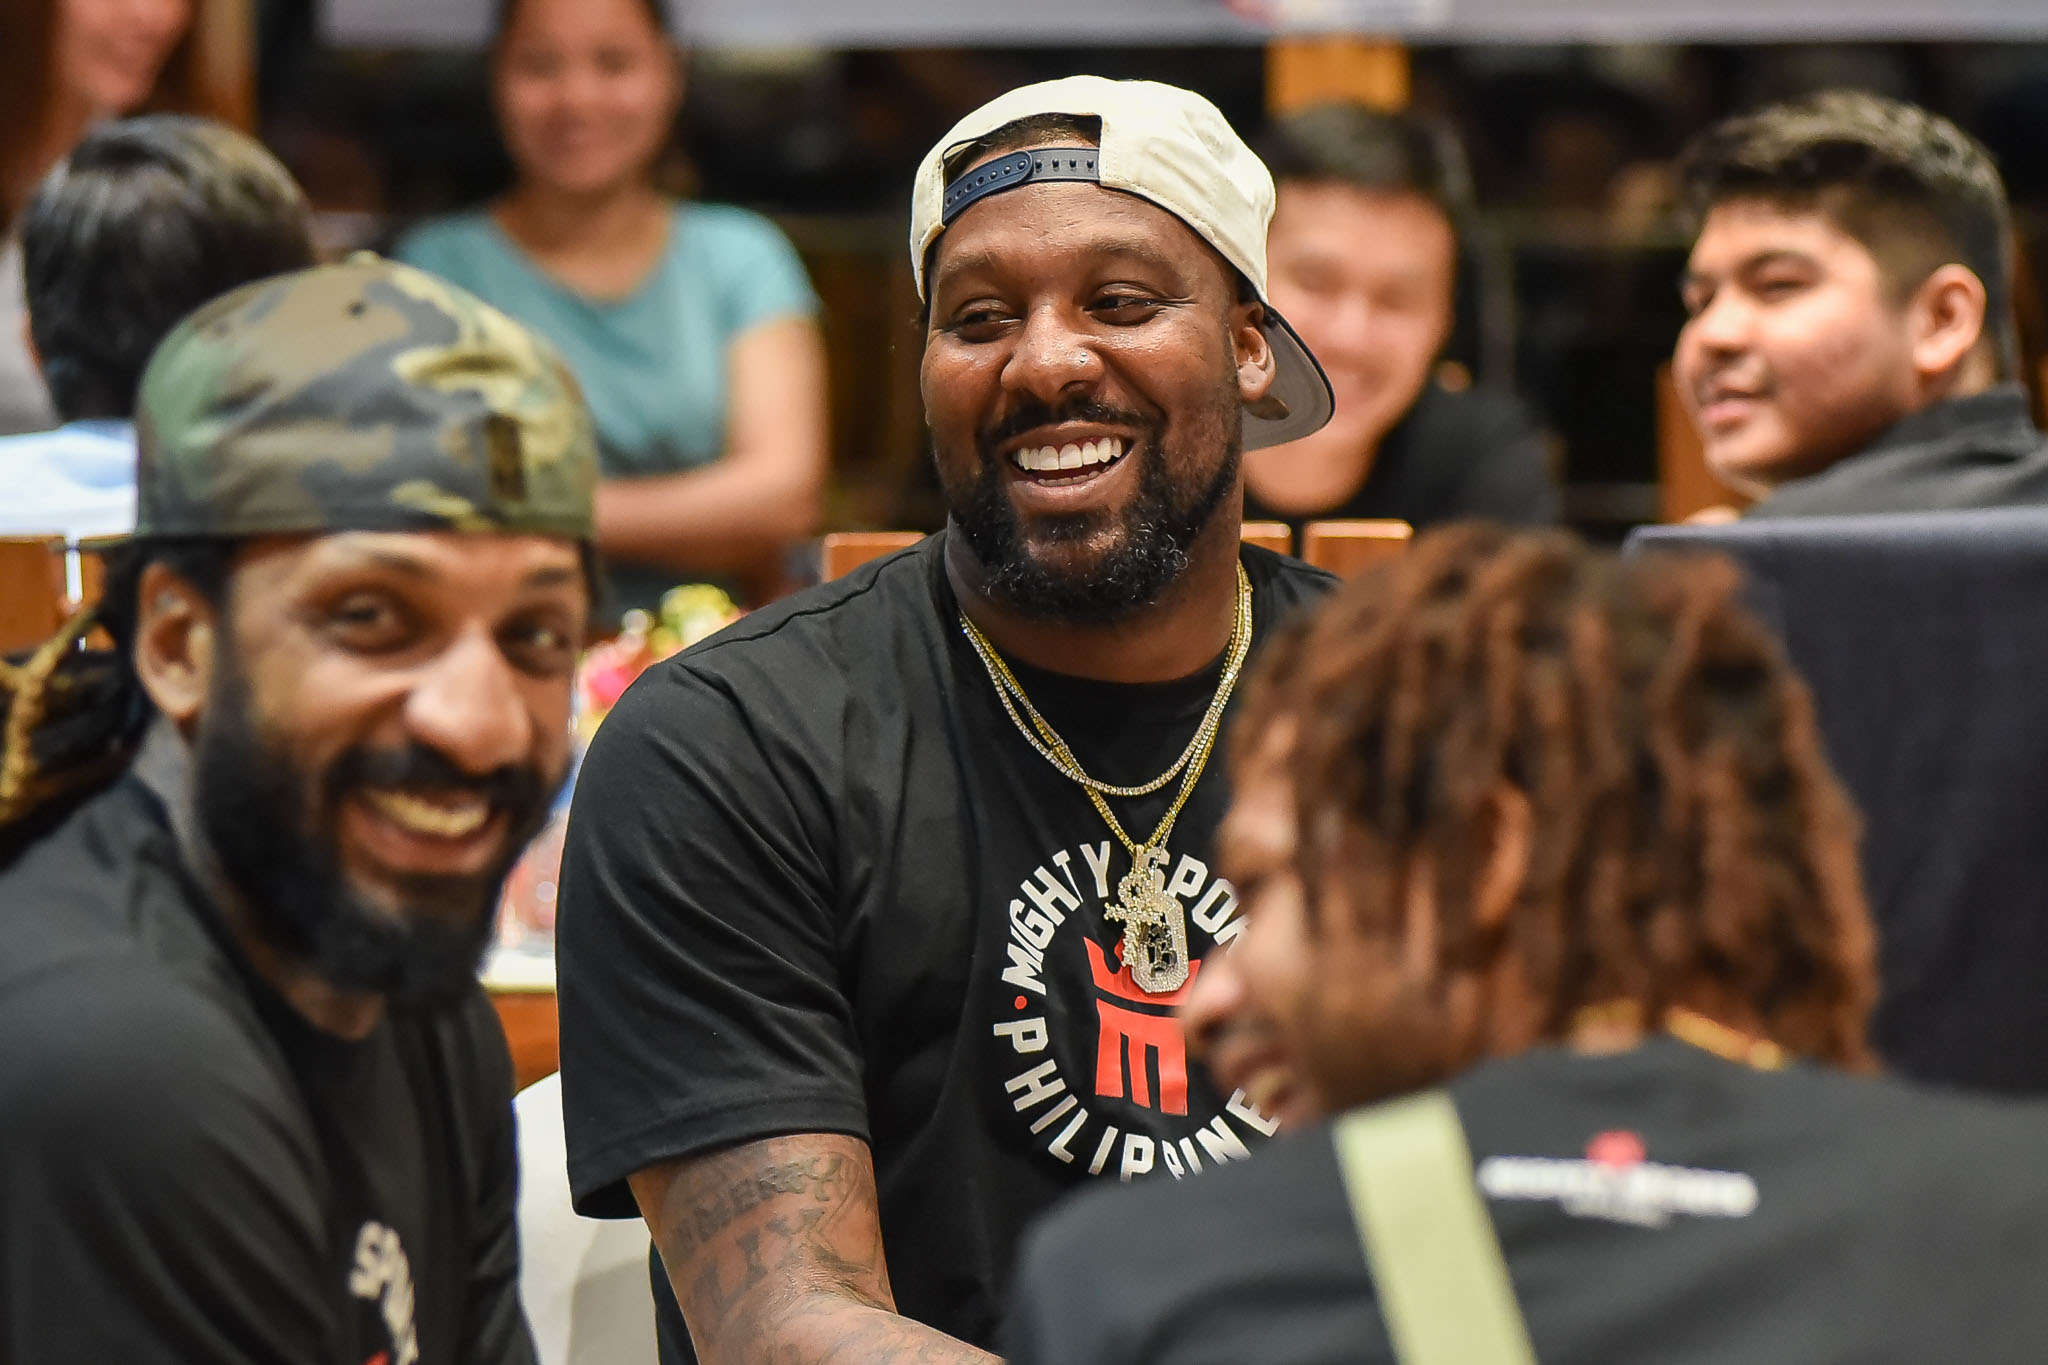 Tiebreaker Times Balkman can't wait to share court with 'brother' Blatche in Mighty Basketball News  Renaldo Balkman Mighty Sports Andray Blatche 2020 Dubai International Basketball Championship